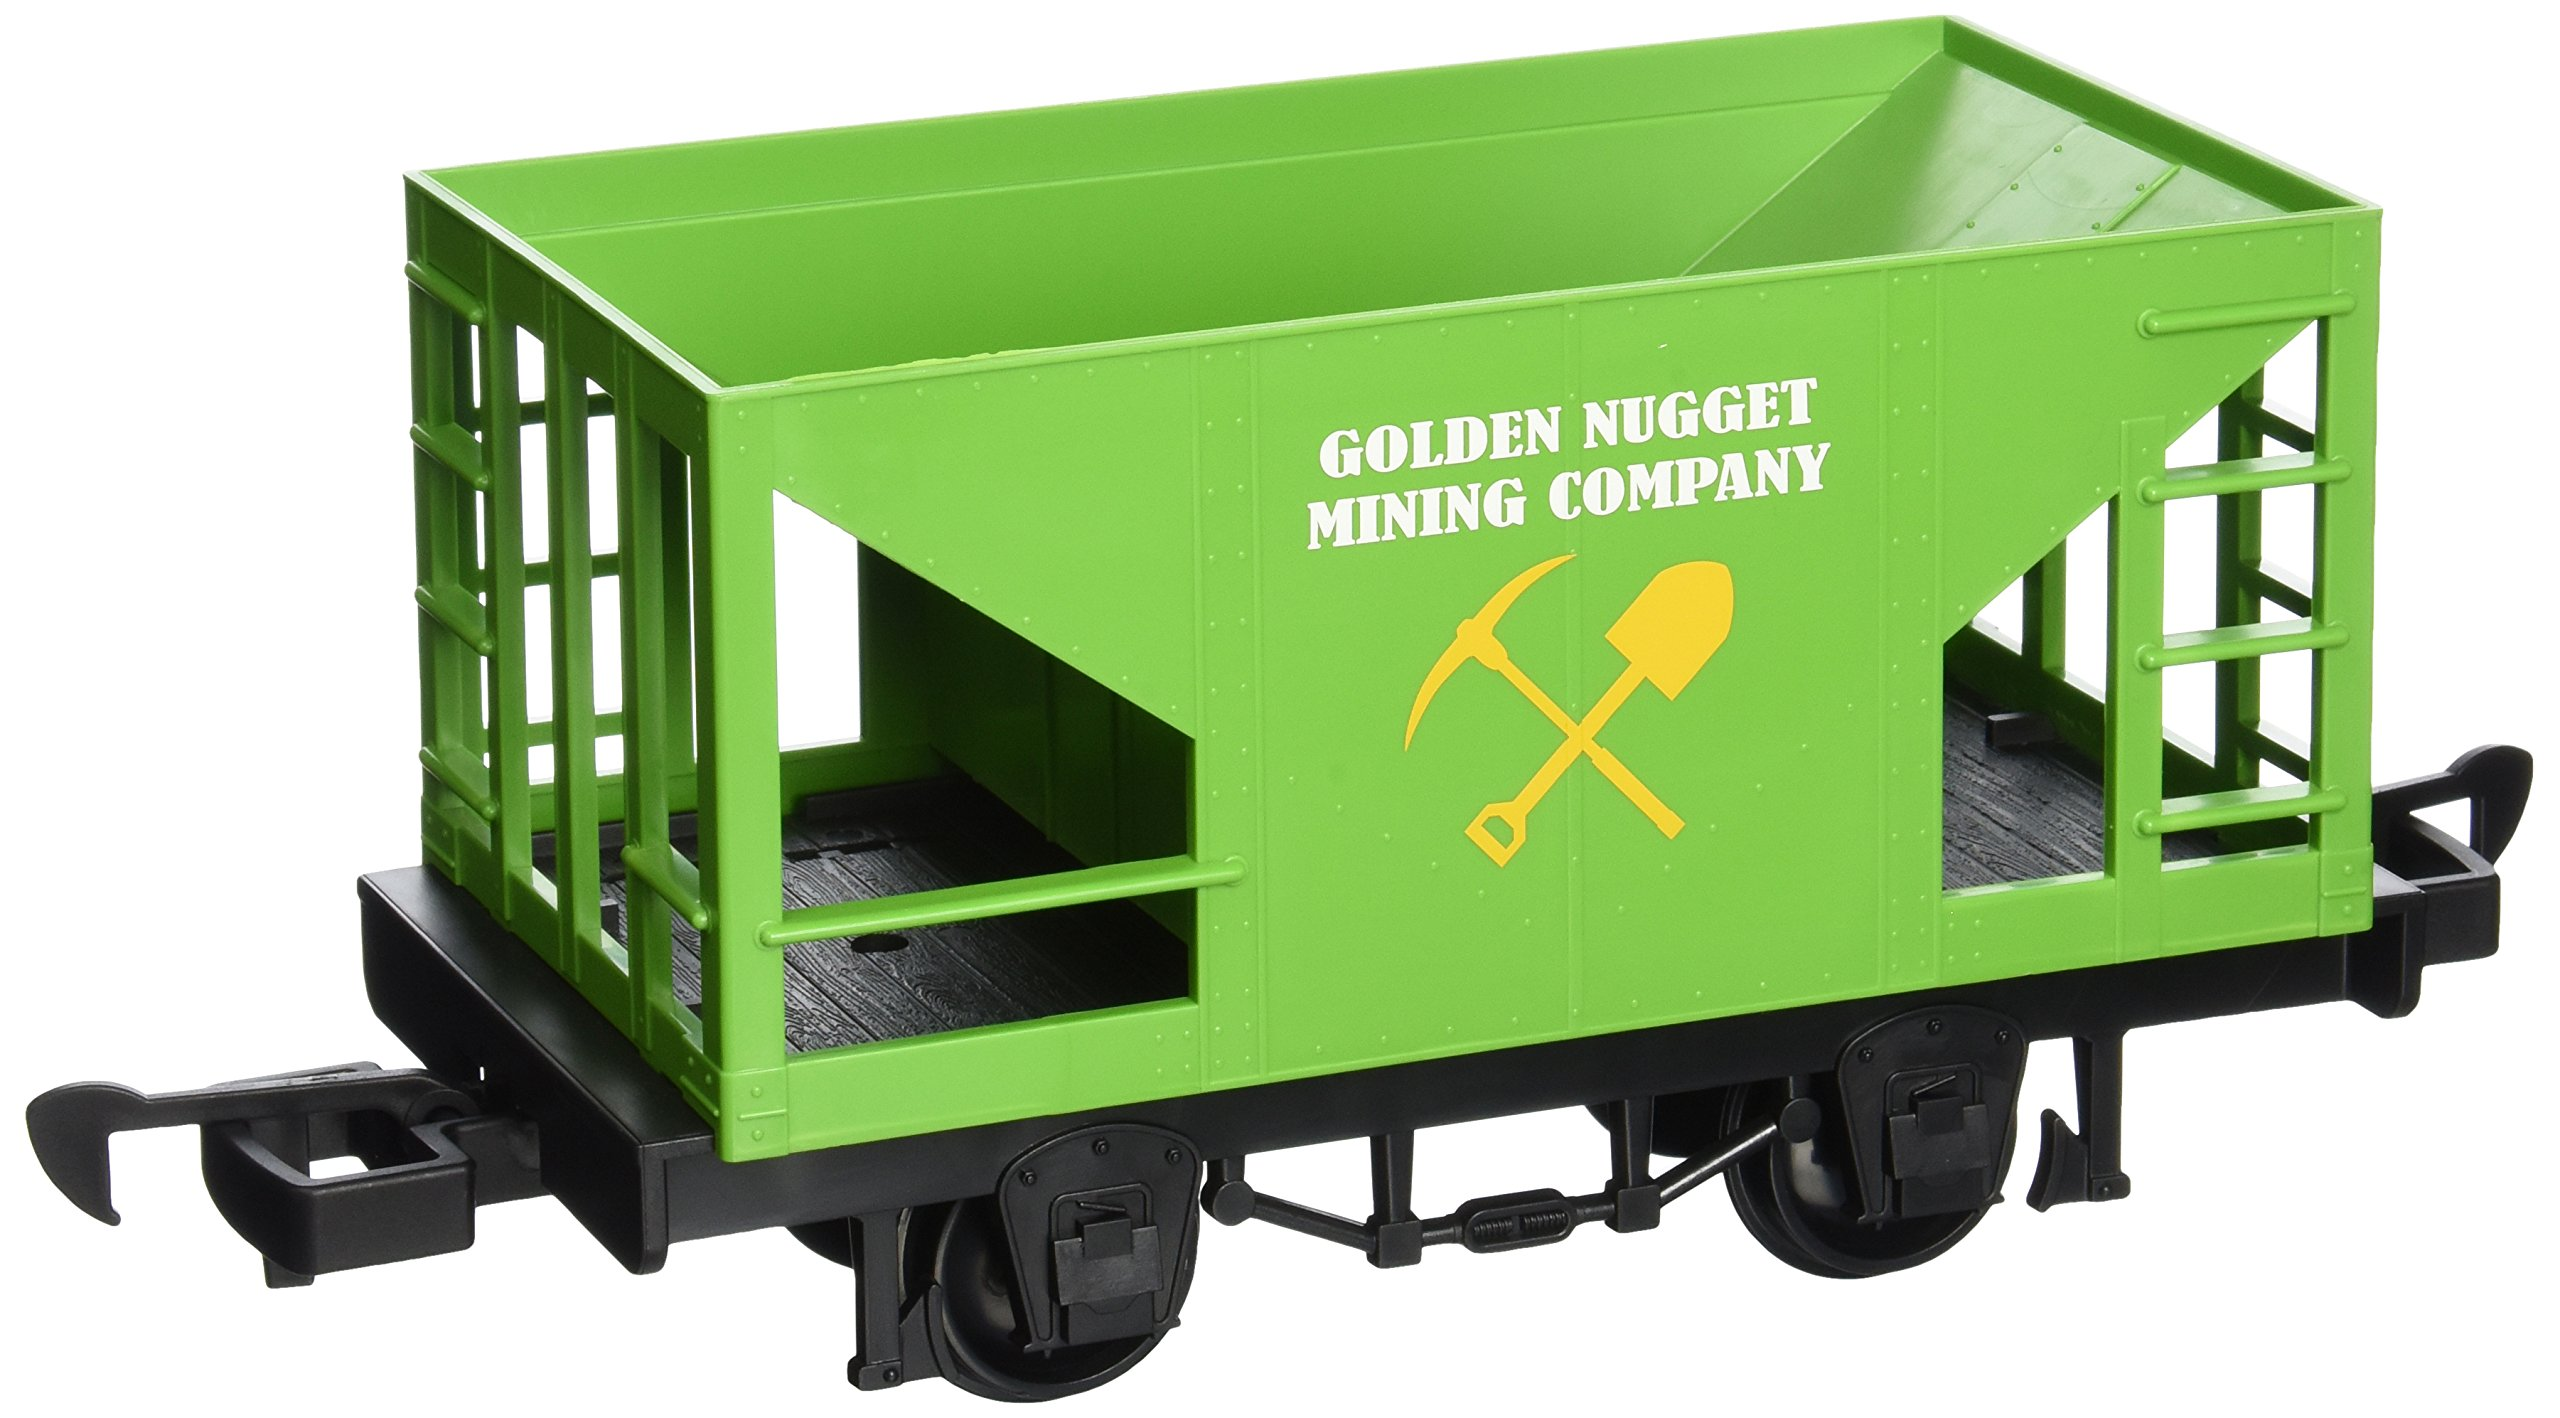 Bachmann Industries Li'L Big Haulers Golden Nugget Mining Company G-Scale Hopper Car, Large